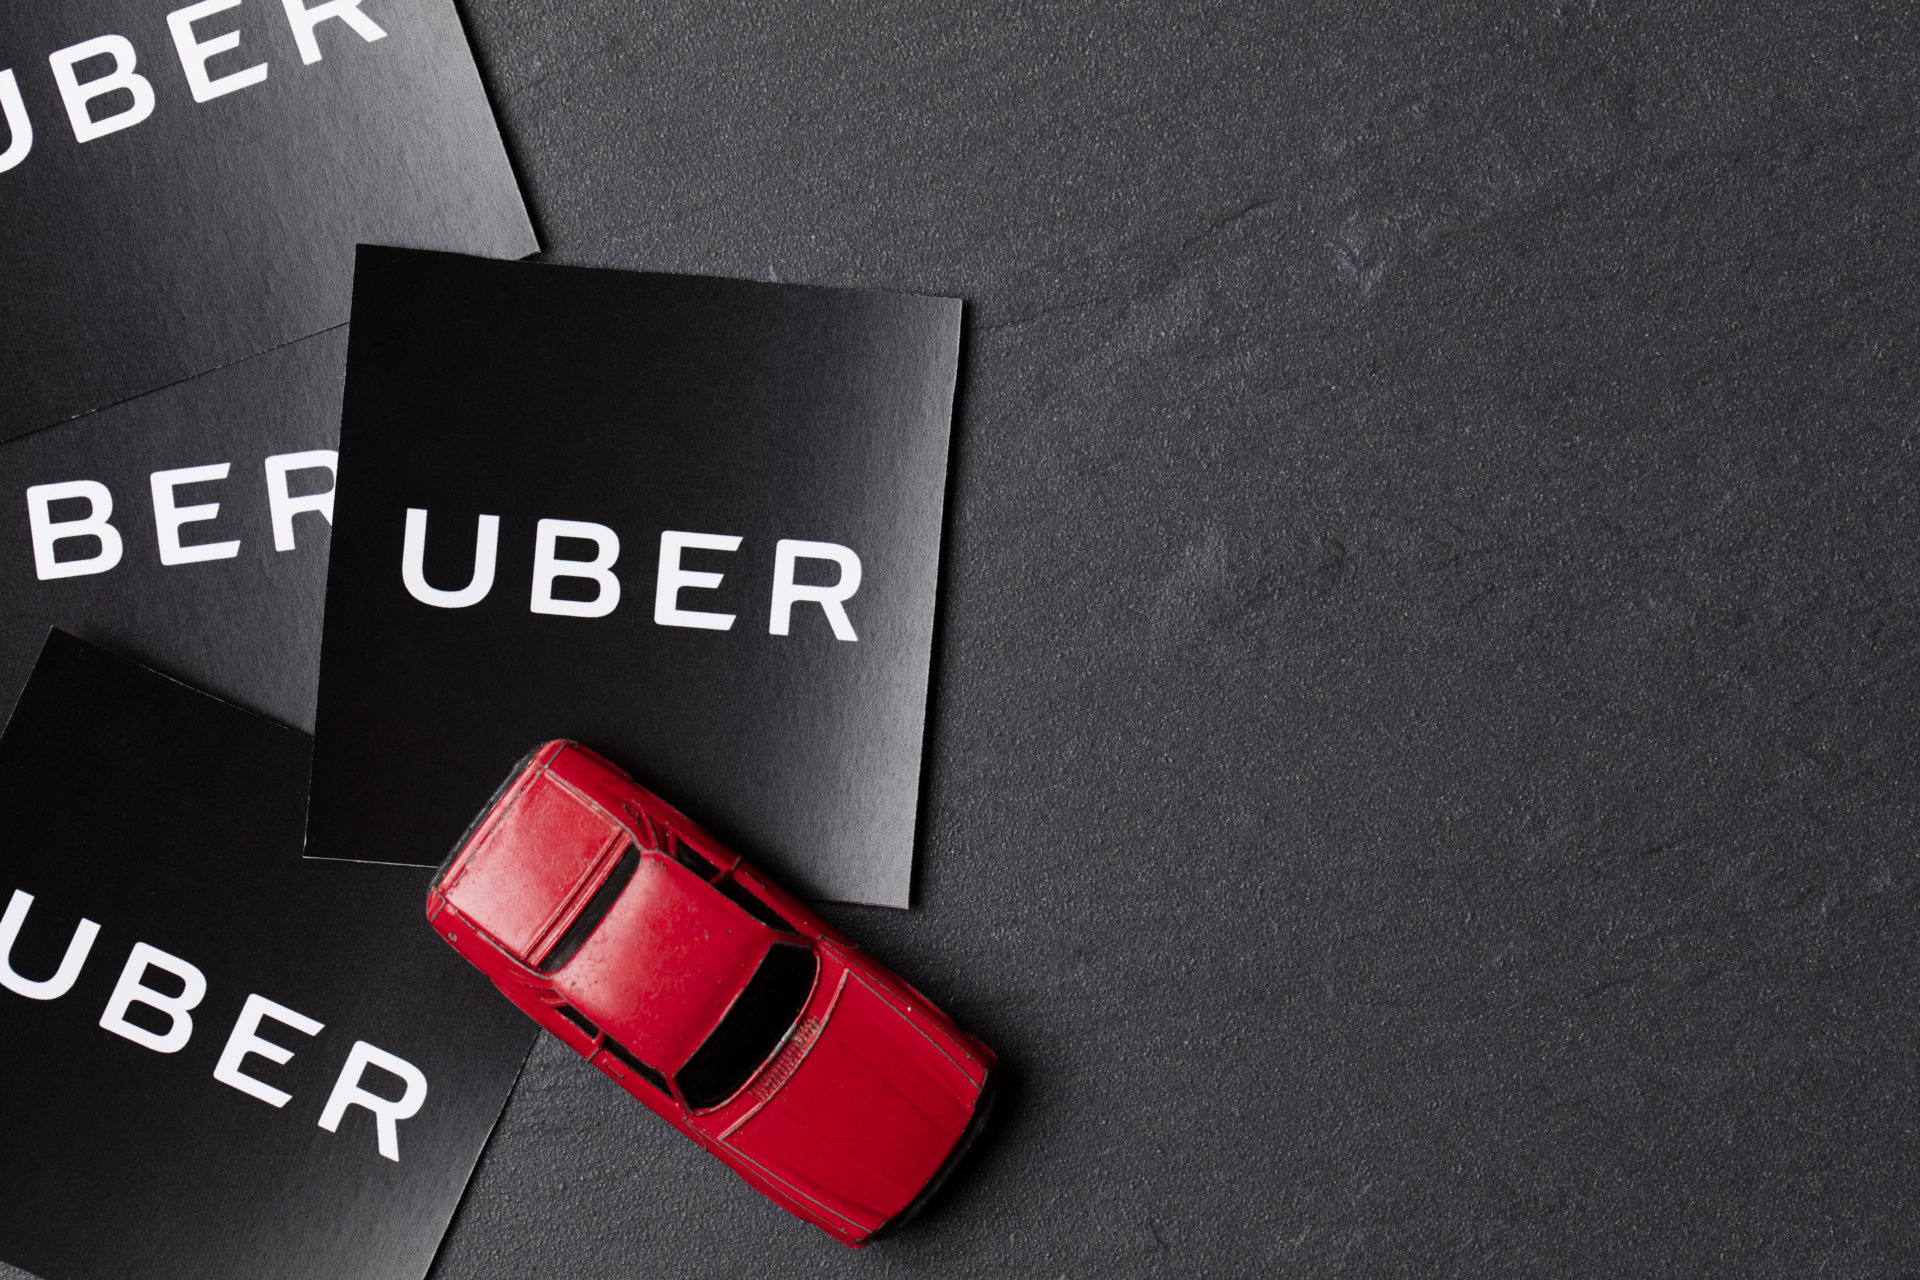 What Uber alternatives are there in London?